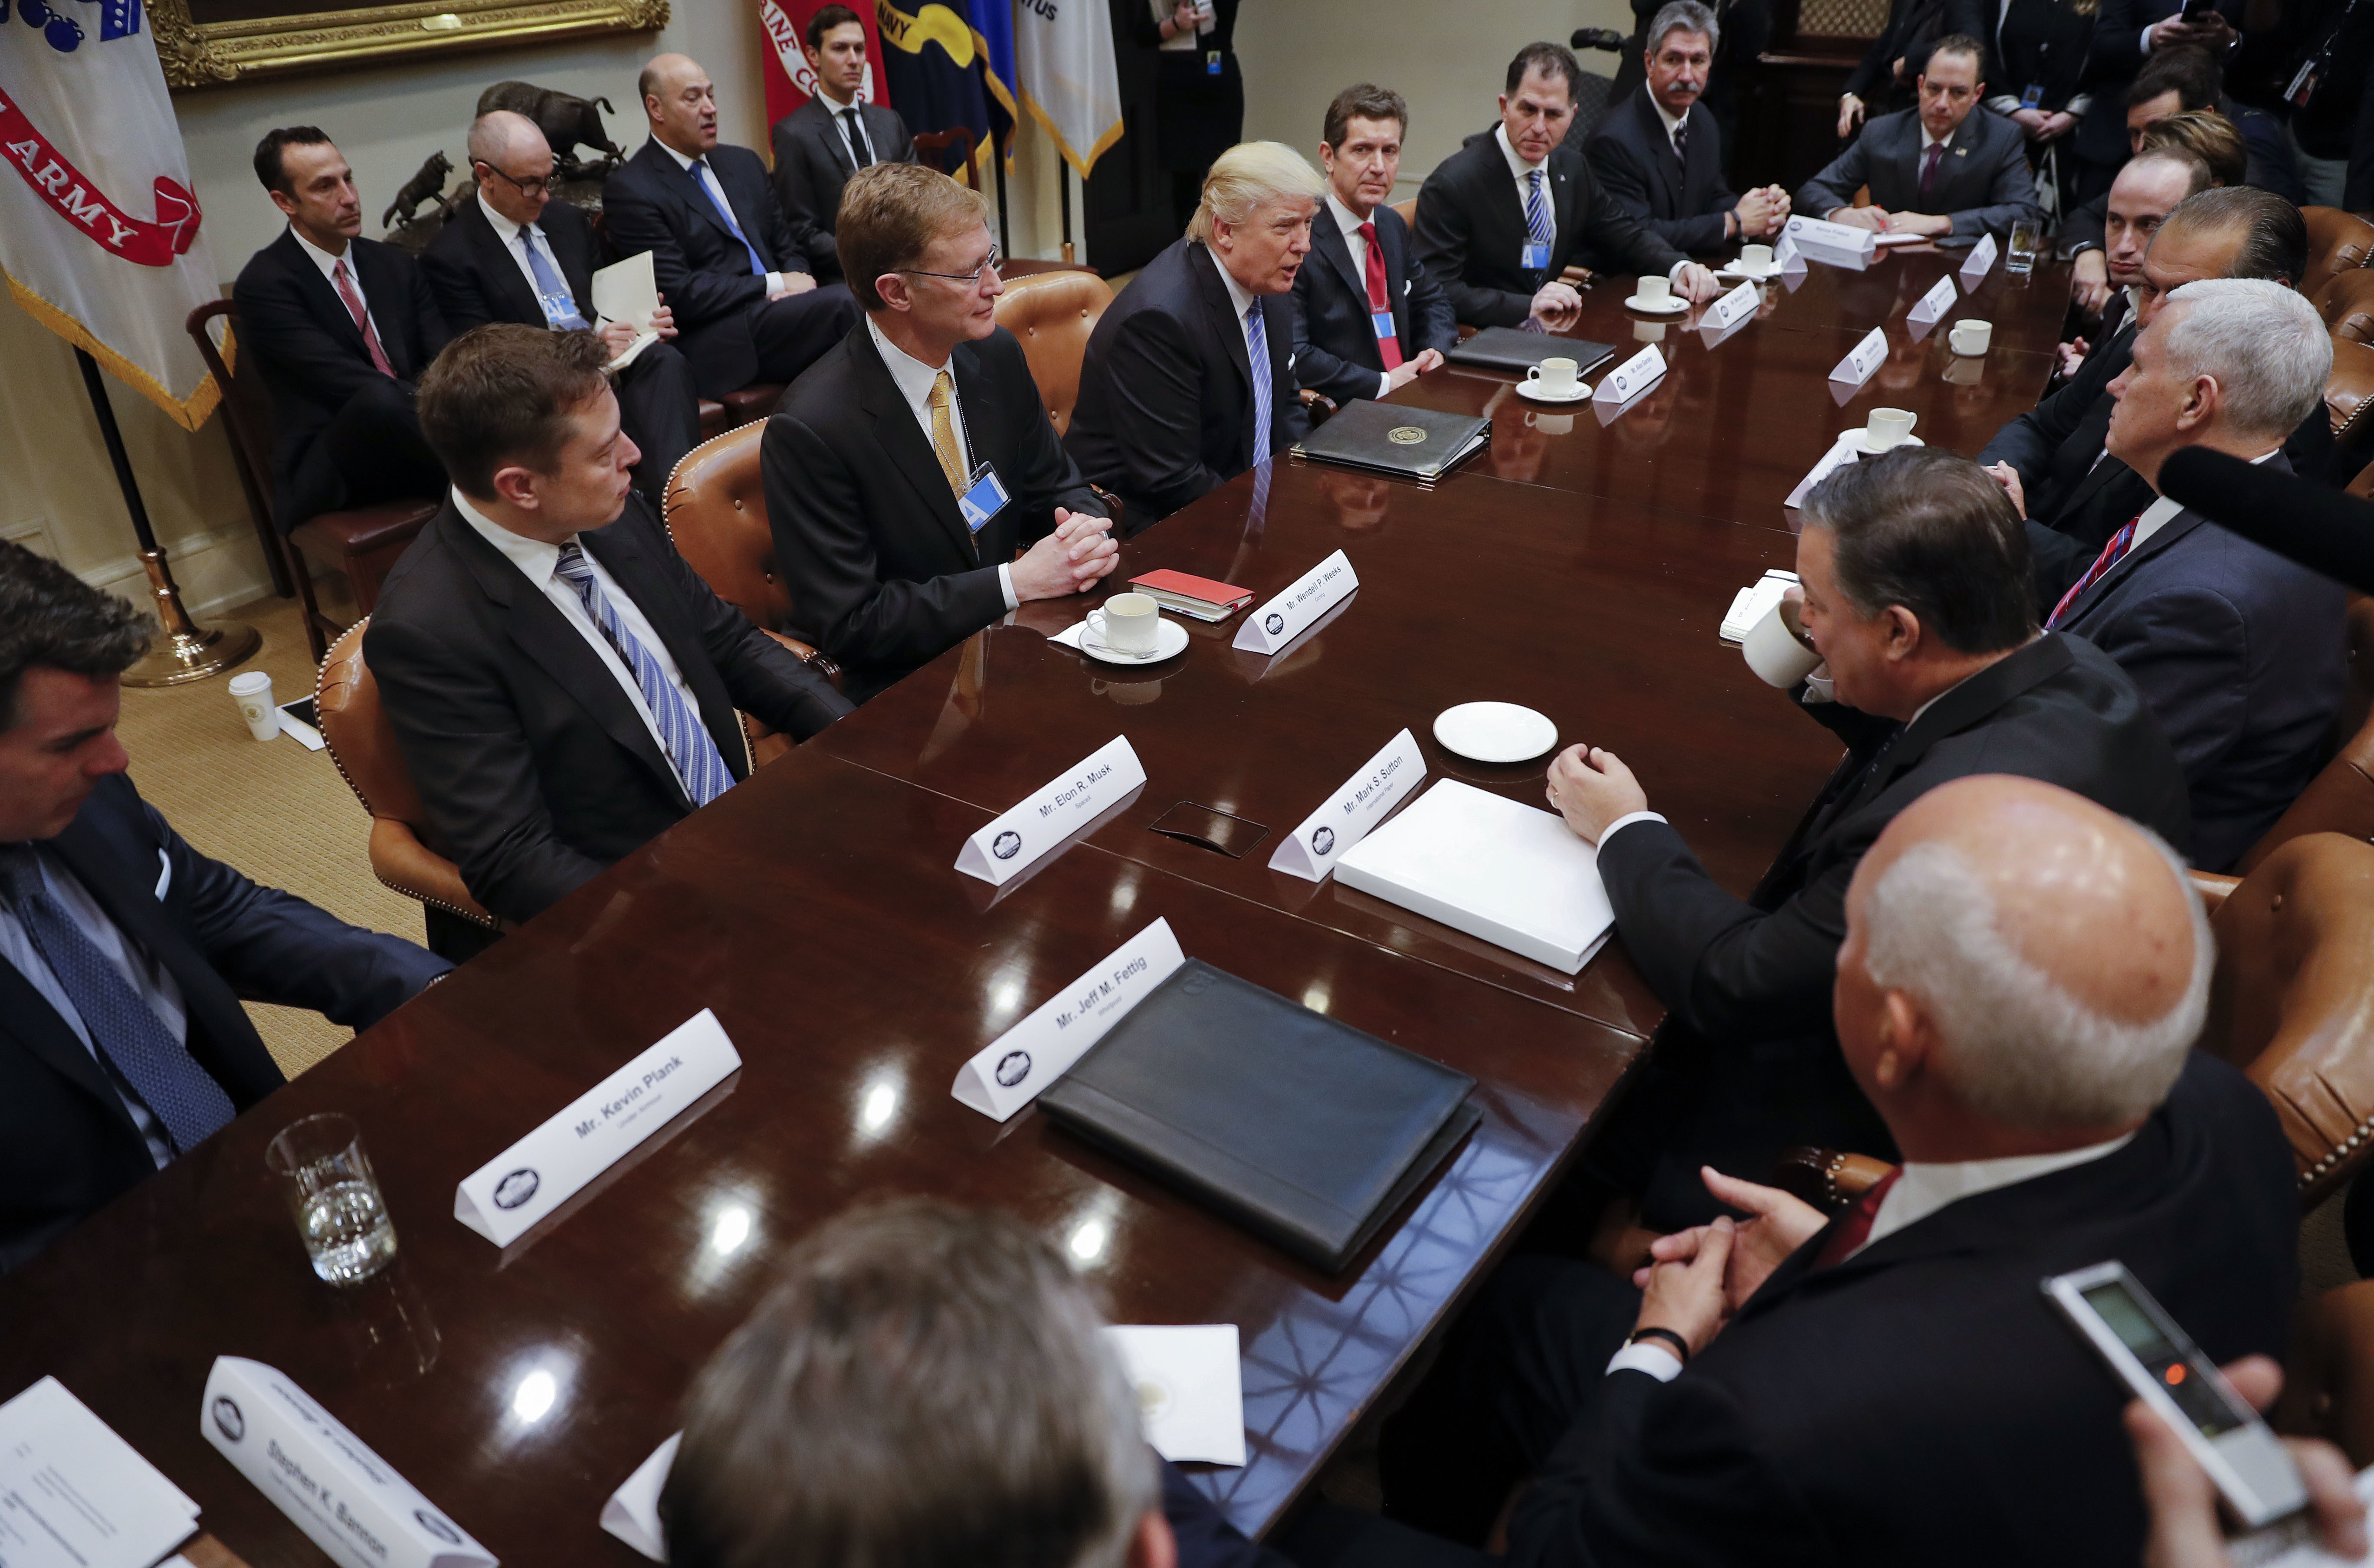 President Donald Trump hosts breakfast with business leaders in the Roosevelt Room of the White House in Washington on Jan. 23, 2017. (AP Photo/Pablo Martinez Monsivais)